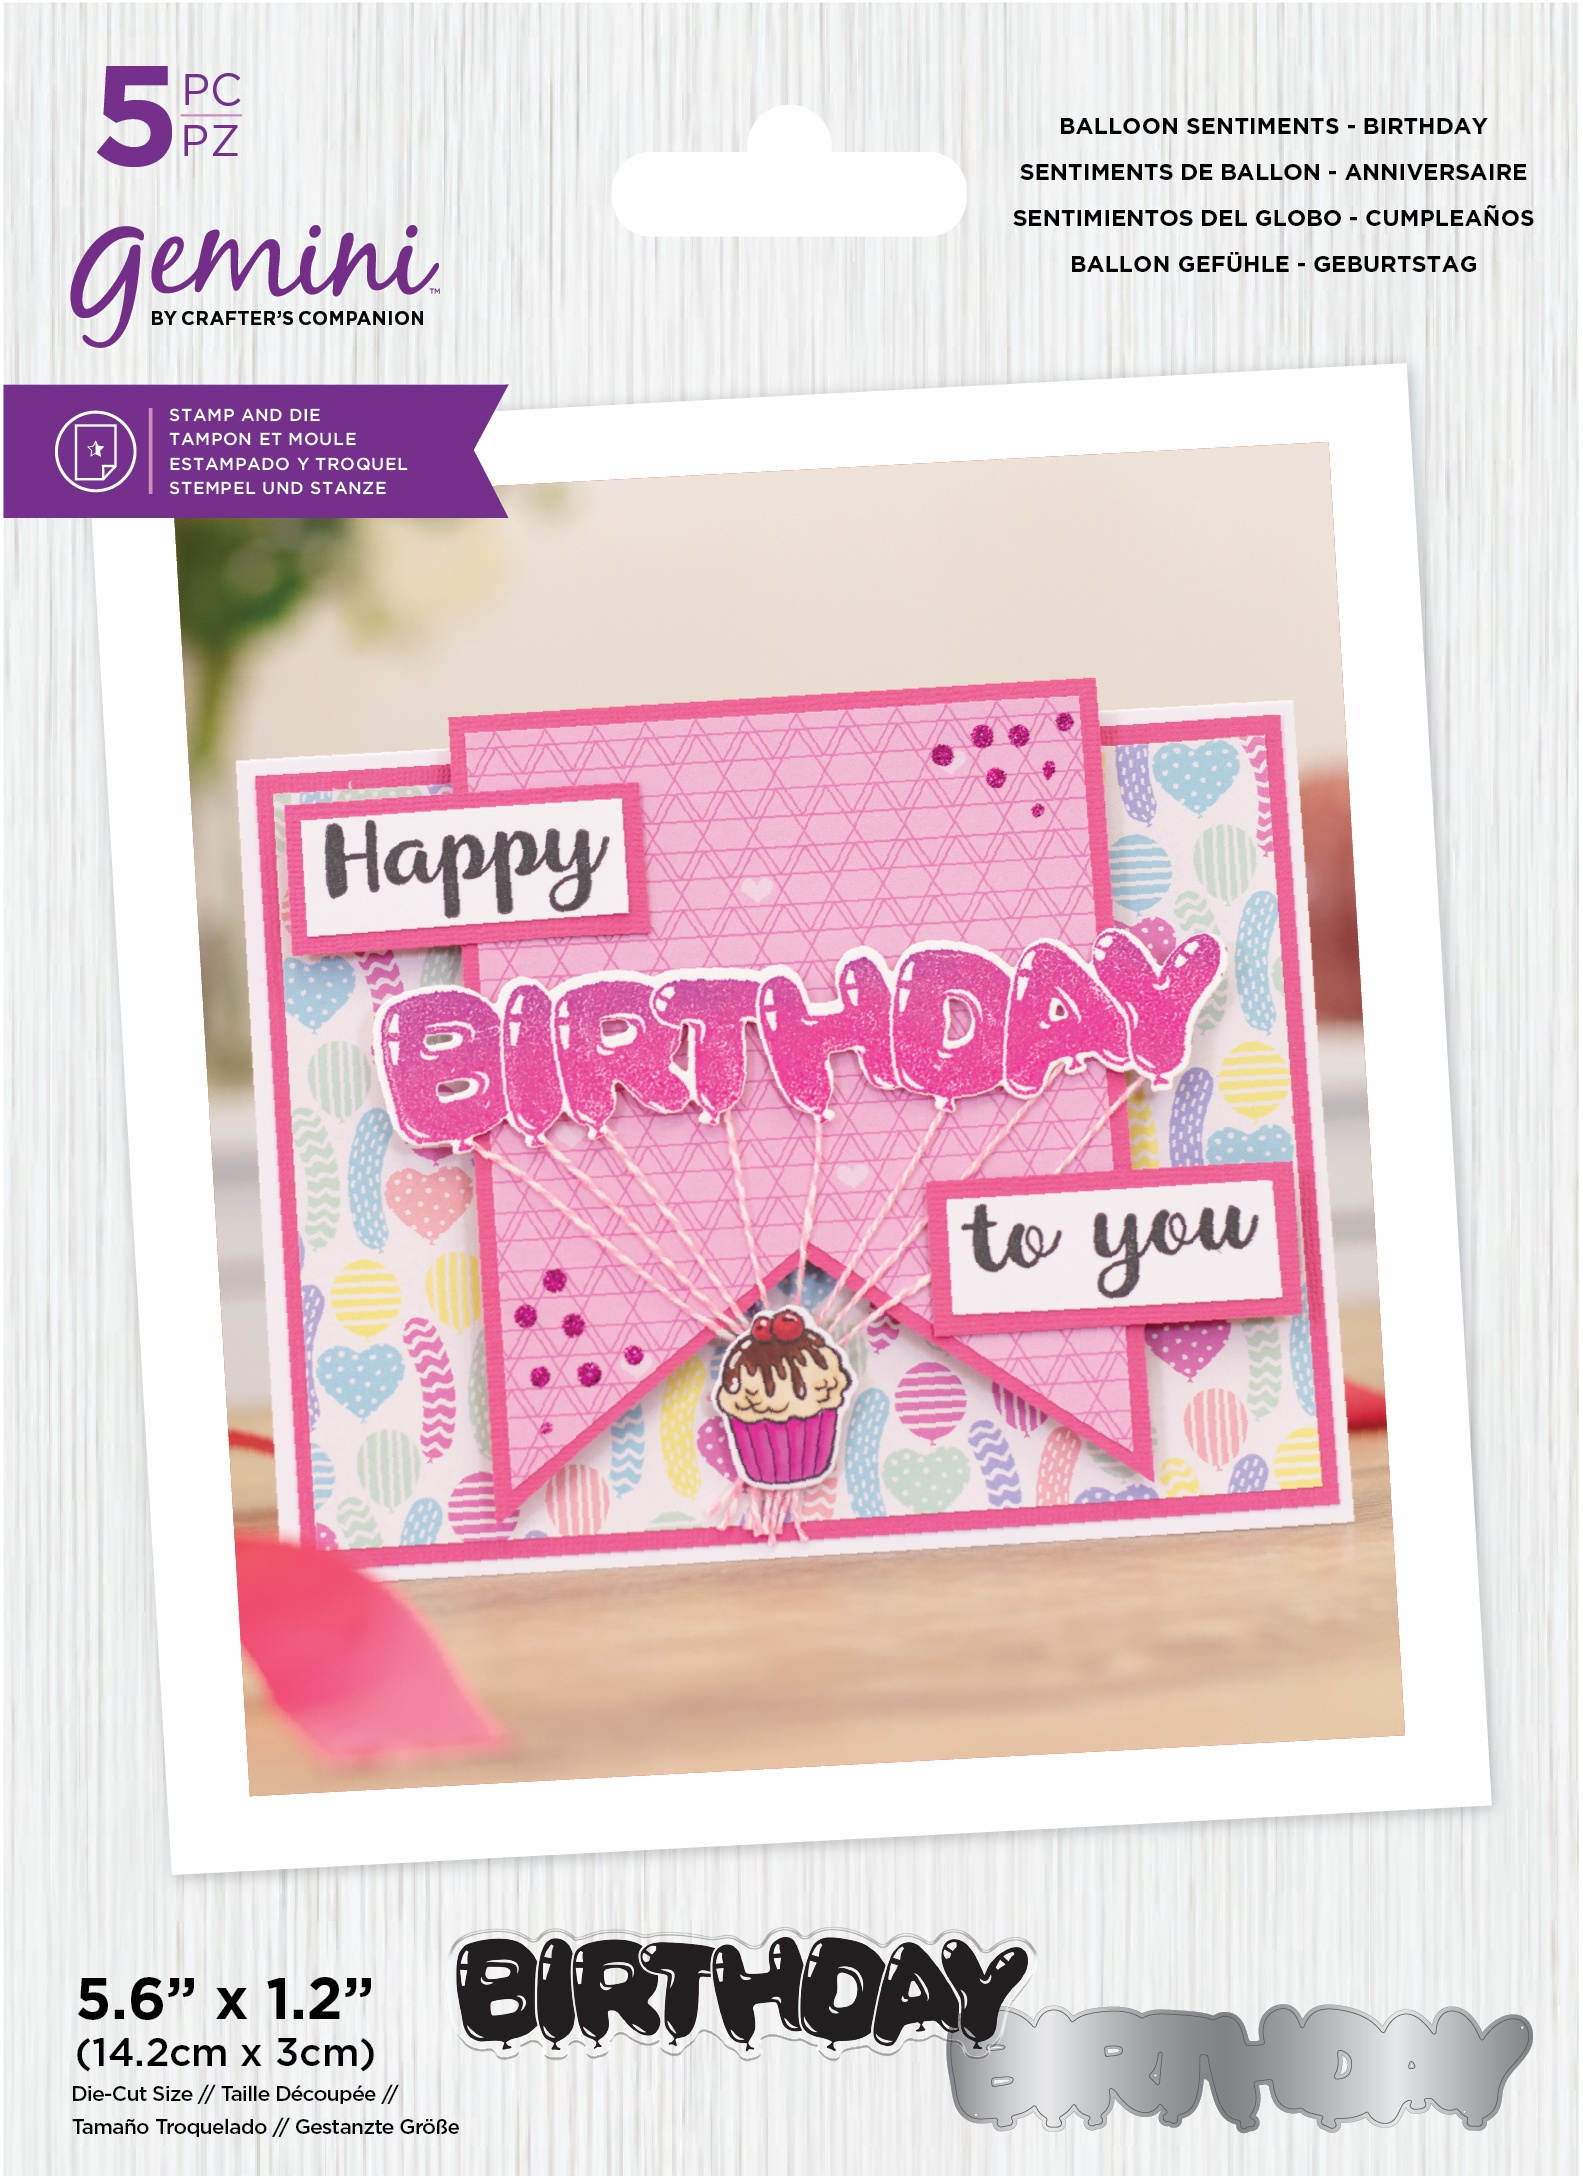 Crafter's Companion Gemini Clear Stamps & Dies-Birthday -Balloon Sentiments